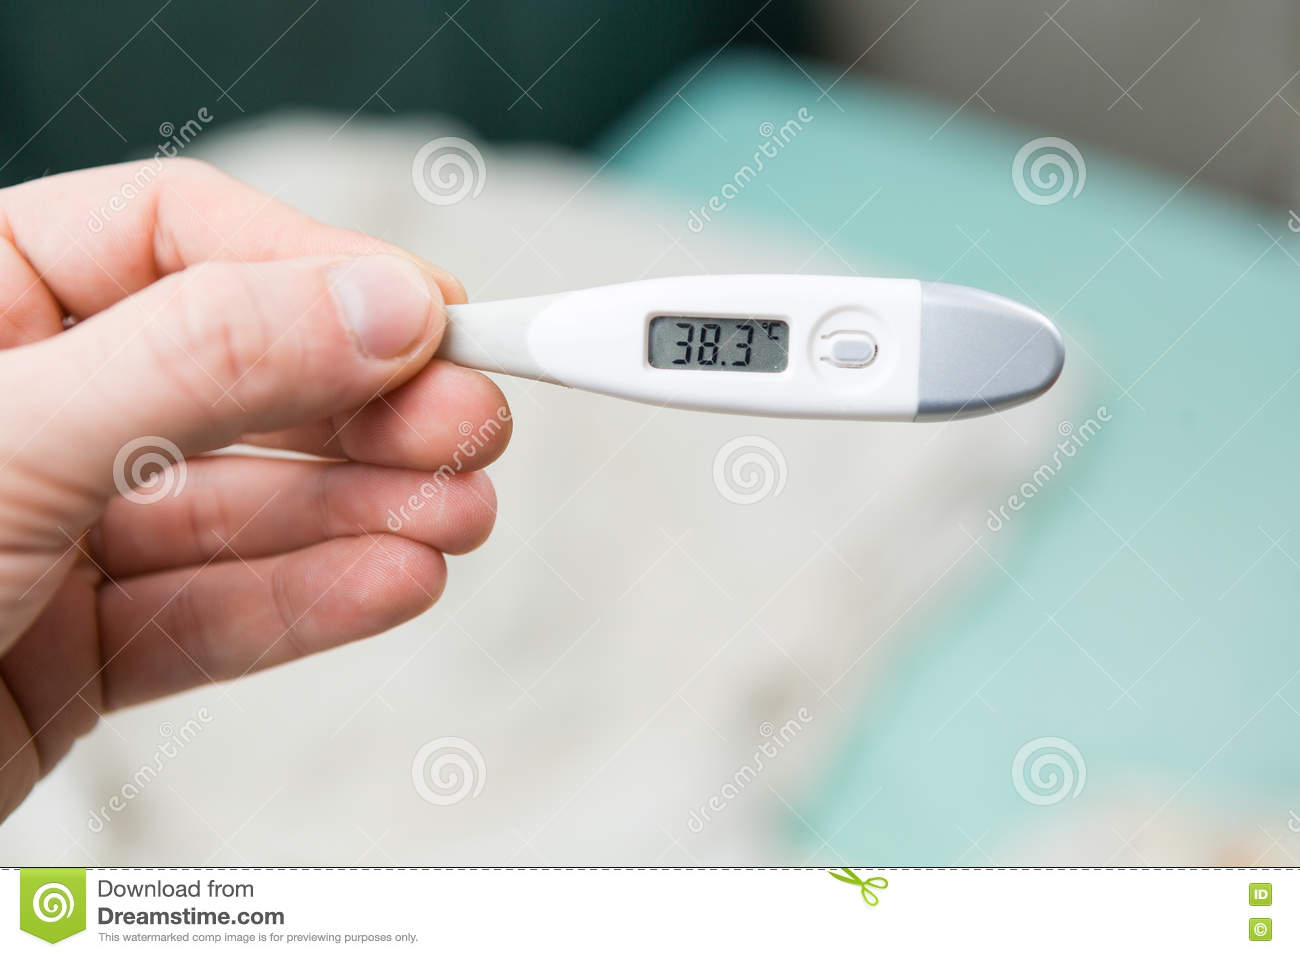 Male hands holding a digital thermometer